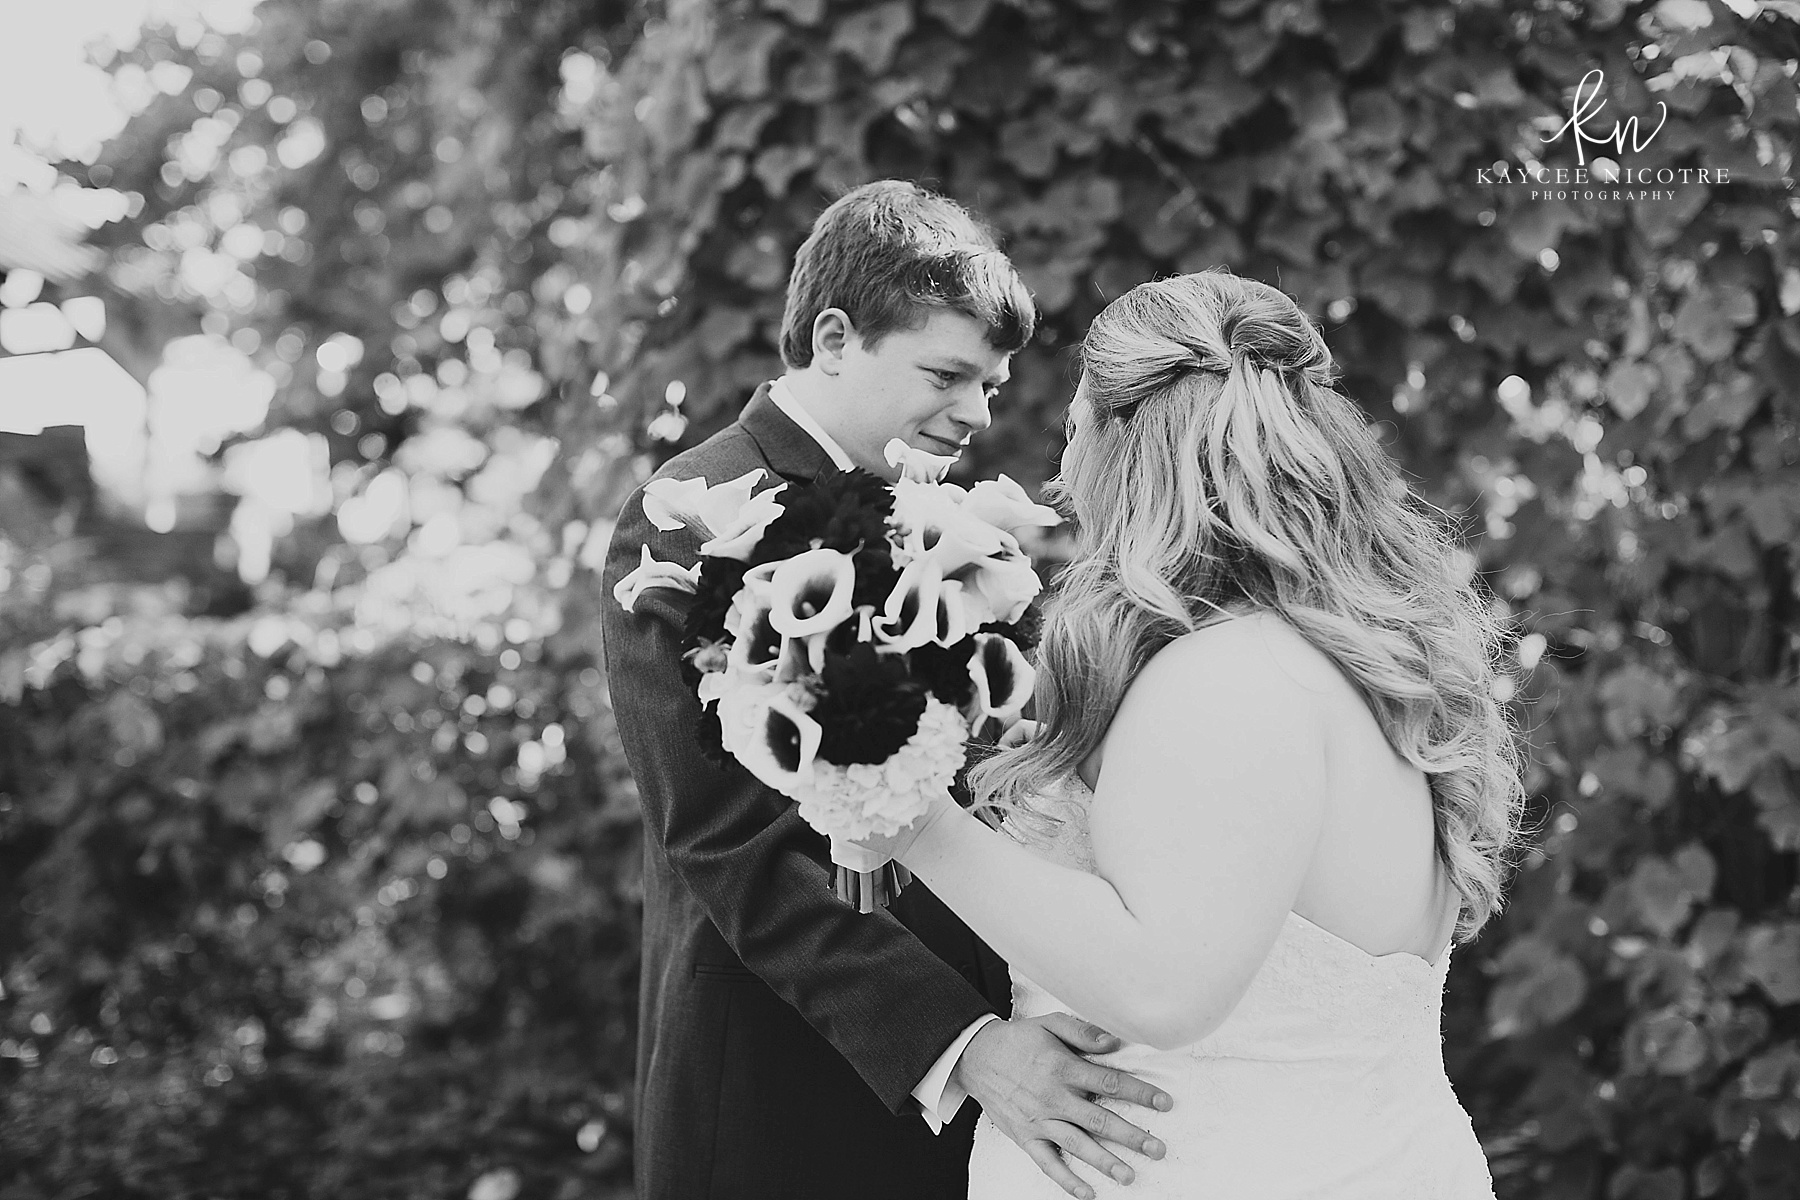 Such a special moment between the groom and bride during their First Look.